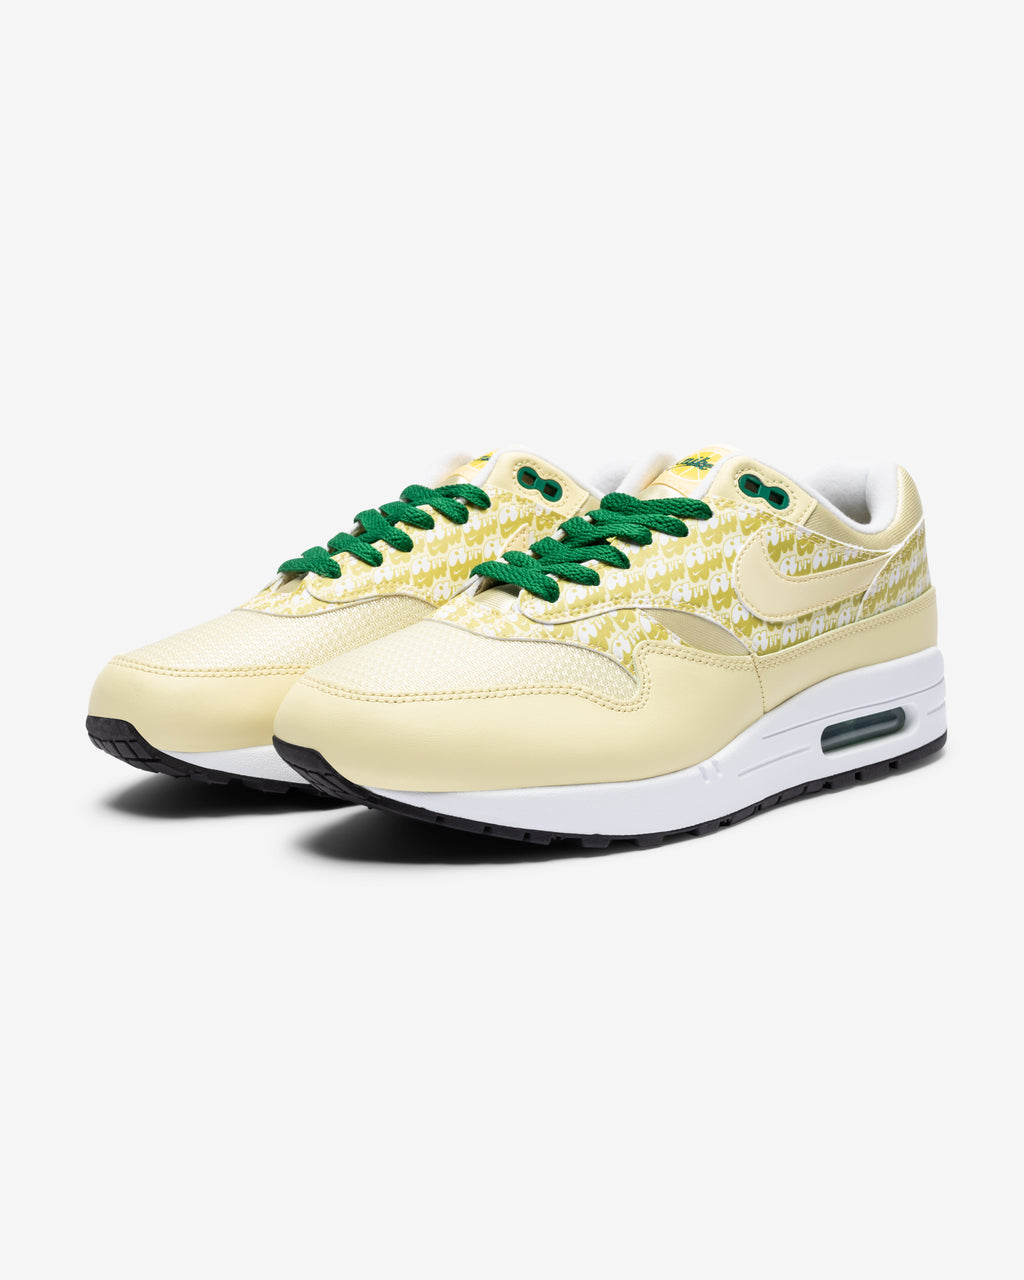 AIR MAX 1 PREMIUM - LEMONADE/ PINEGREEN/ TRUEWHITE